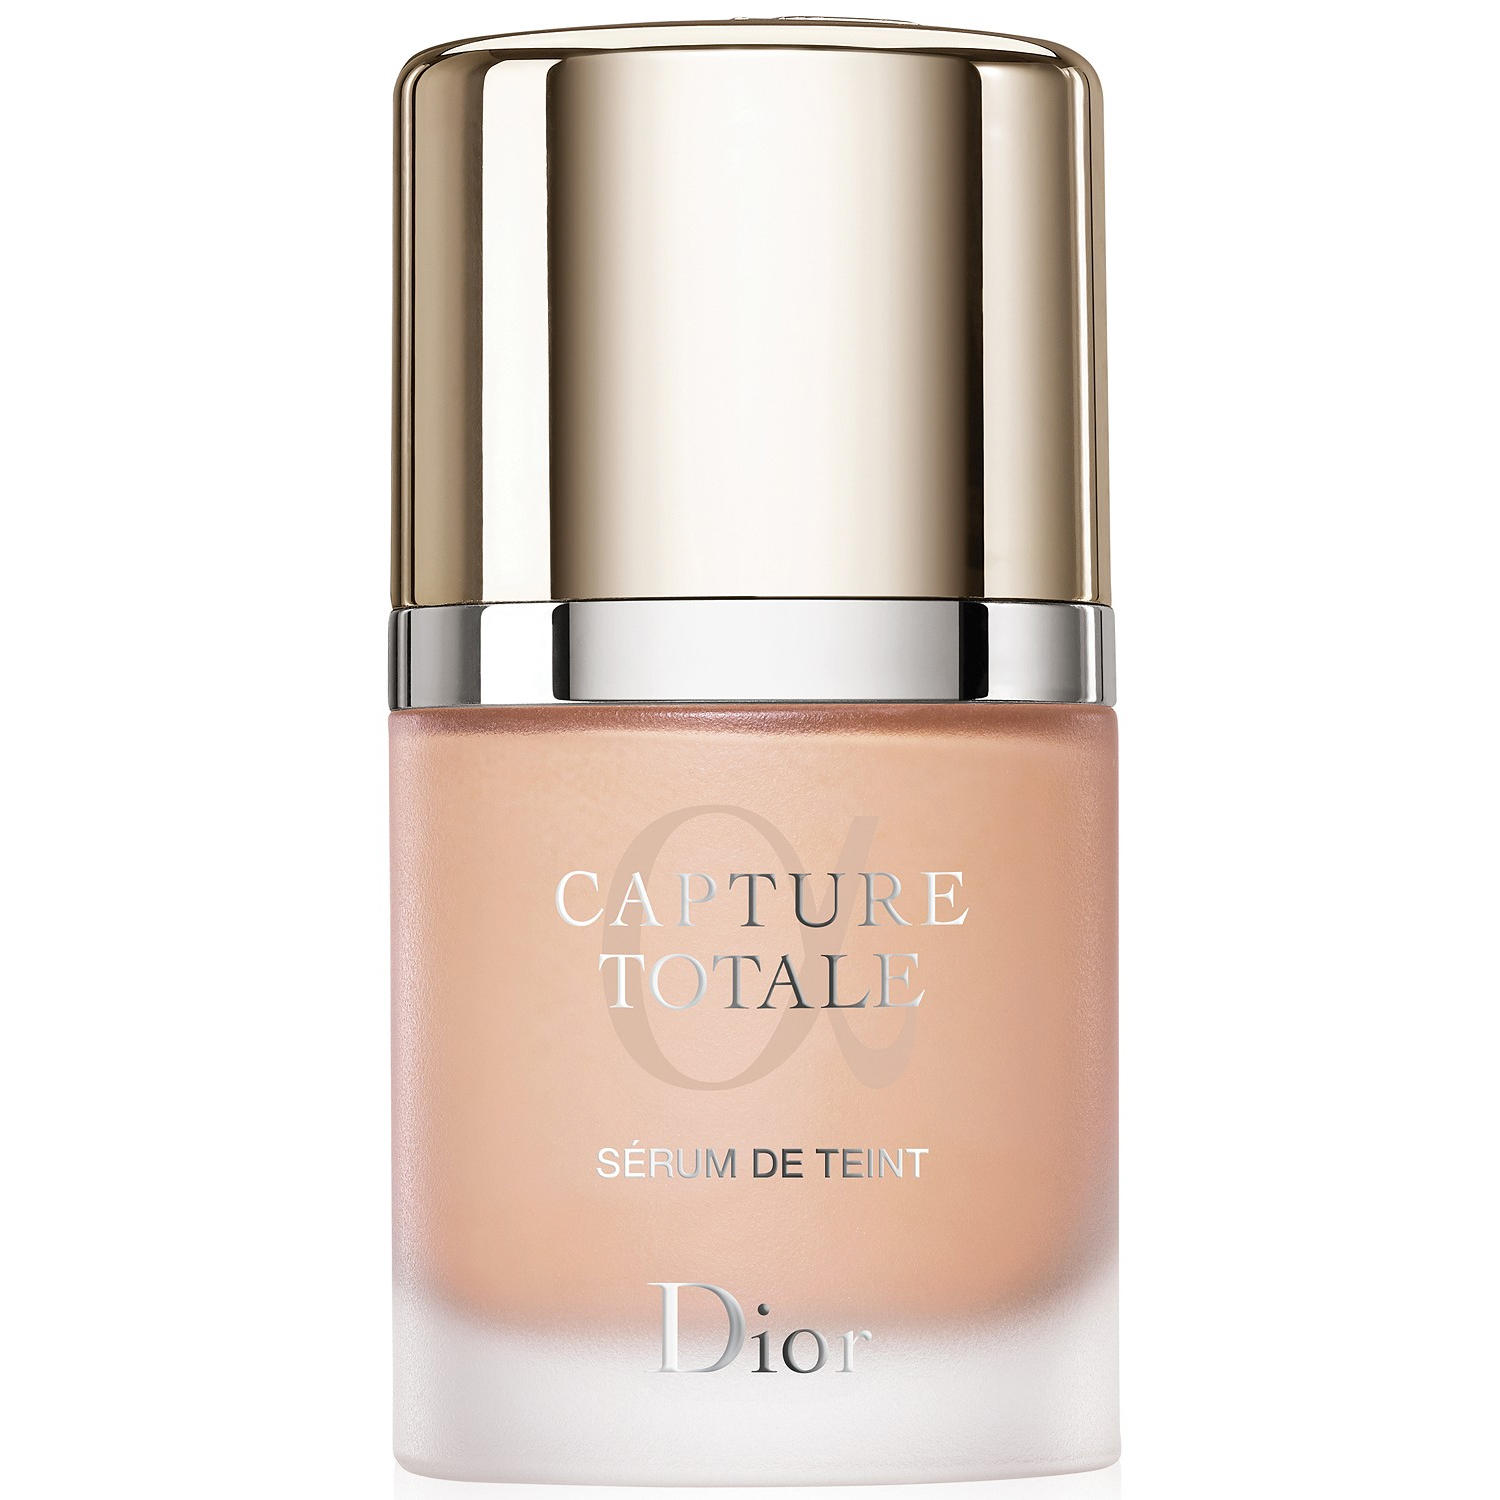 DIor Capture Totale Foundation SPF 15 023